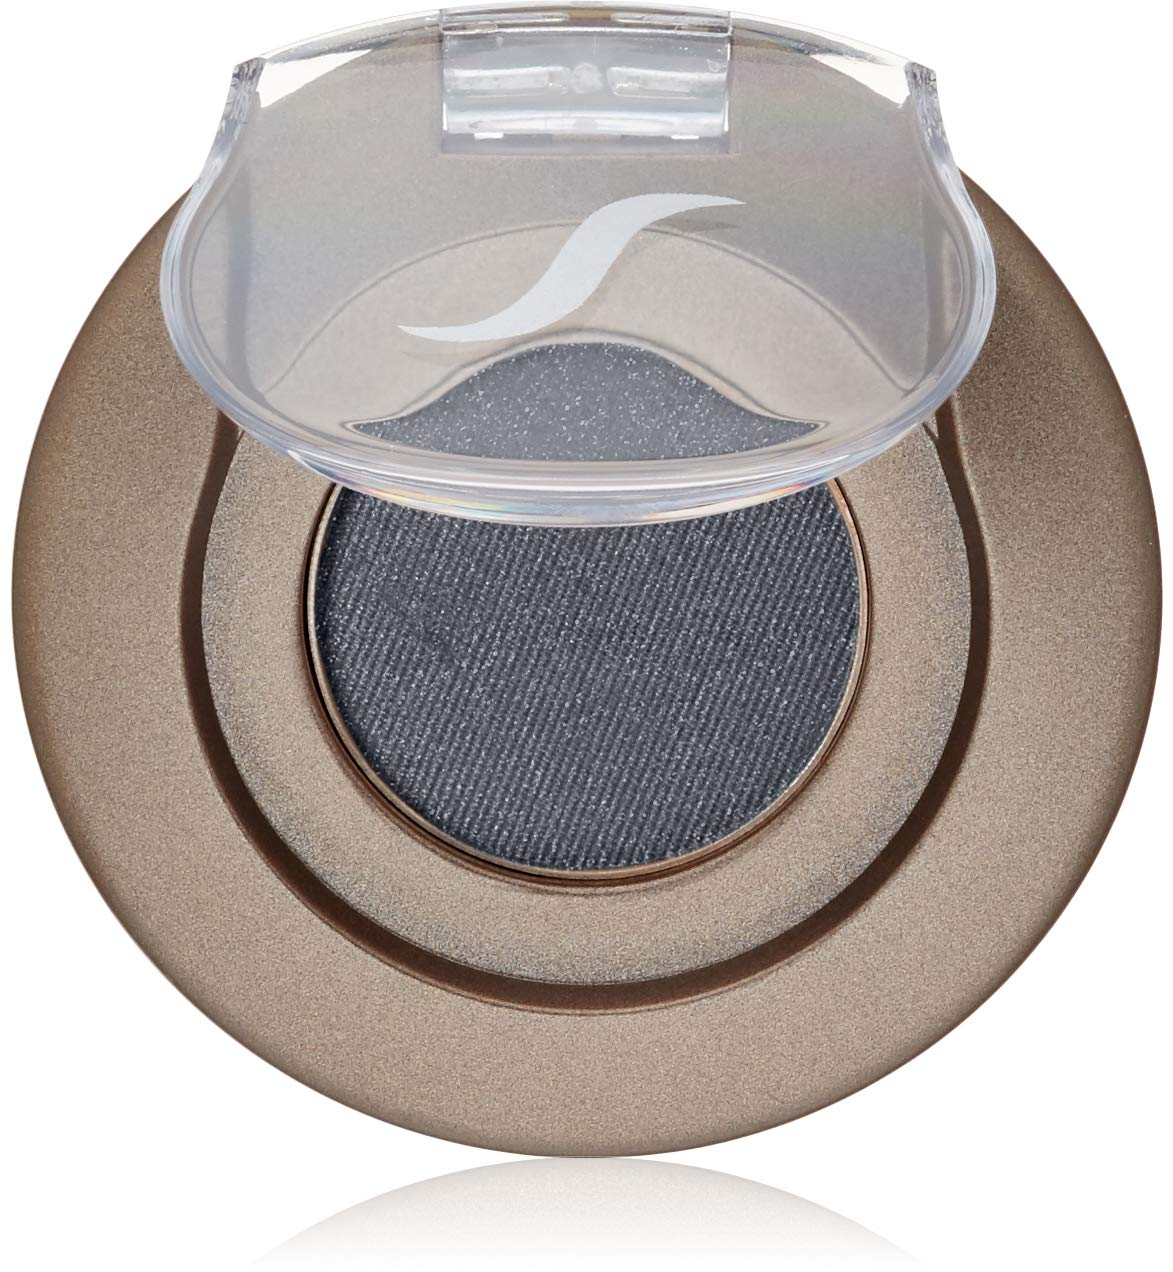 Sorme Cosmetics Mineral Botanicals Eye Shadow, Intrigue, 0.05 Ounce